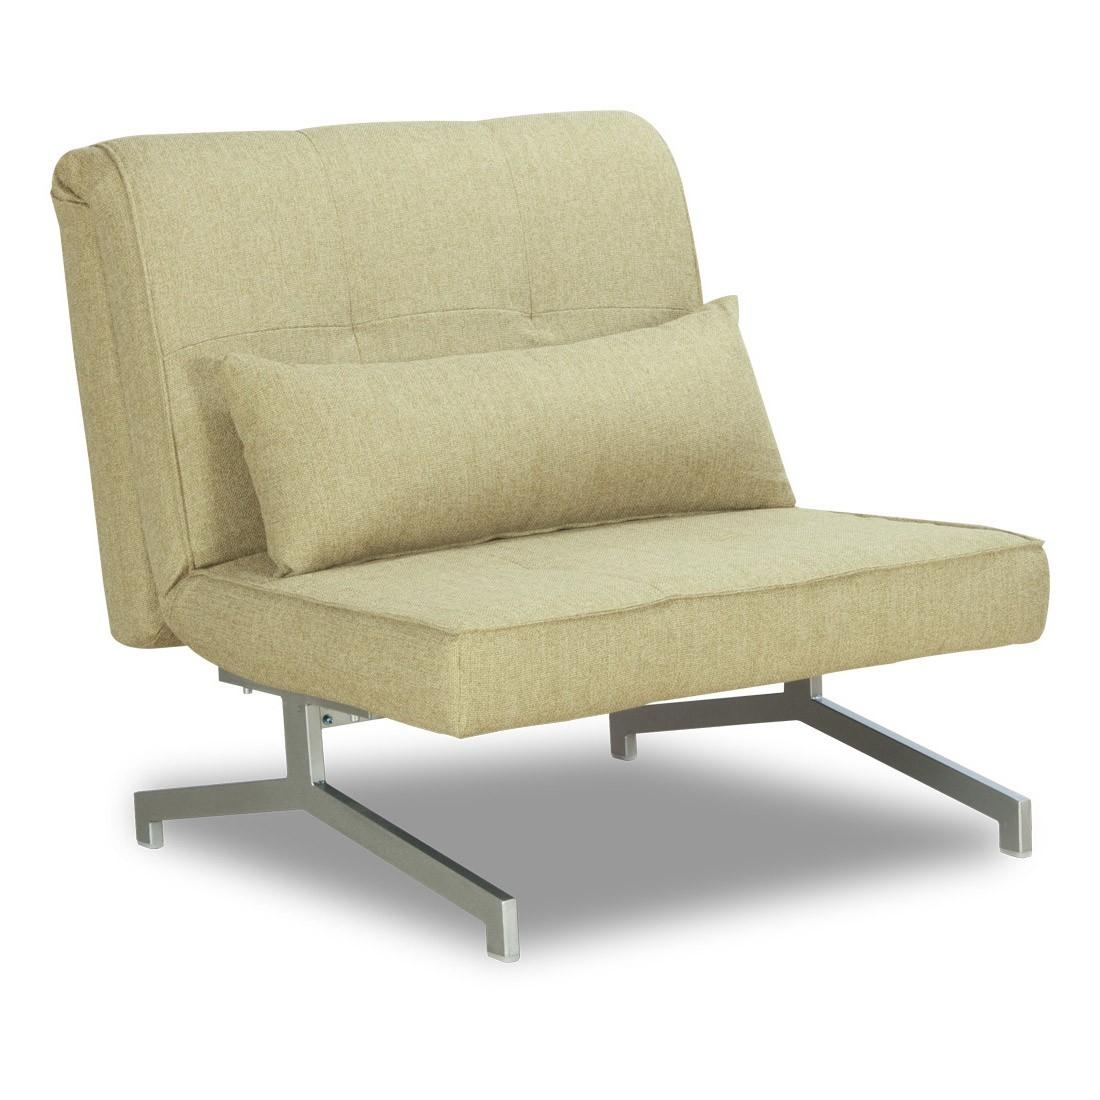 one seater sofa chair best sofas on the high street 22 collection of single beds ideas